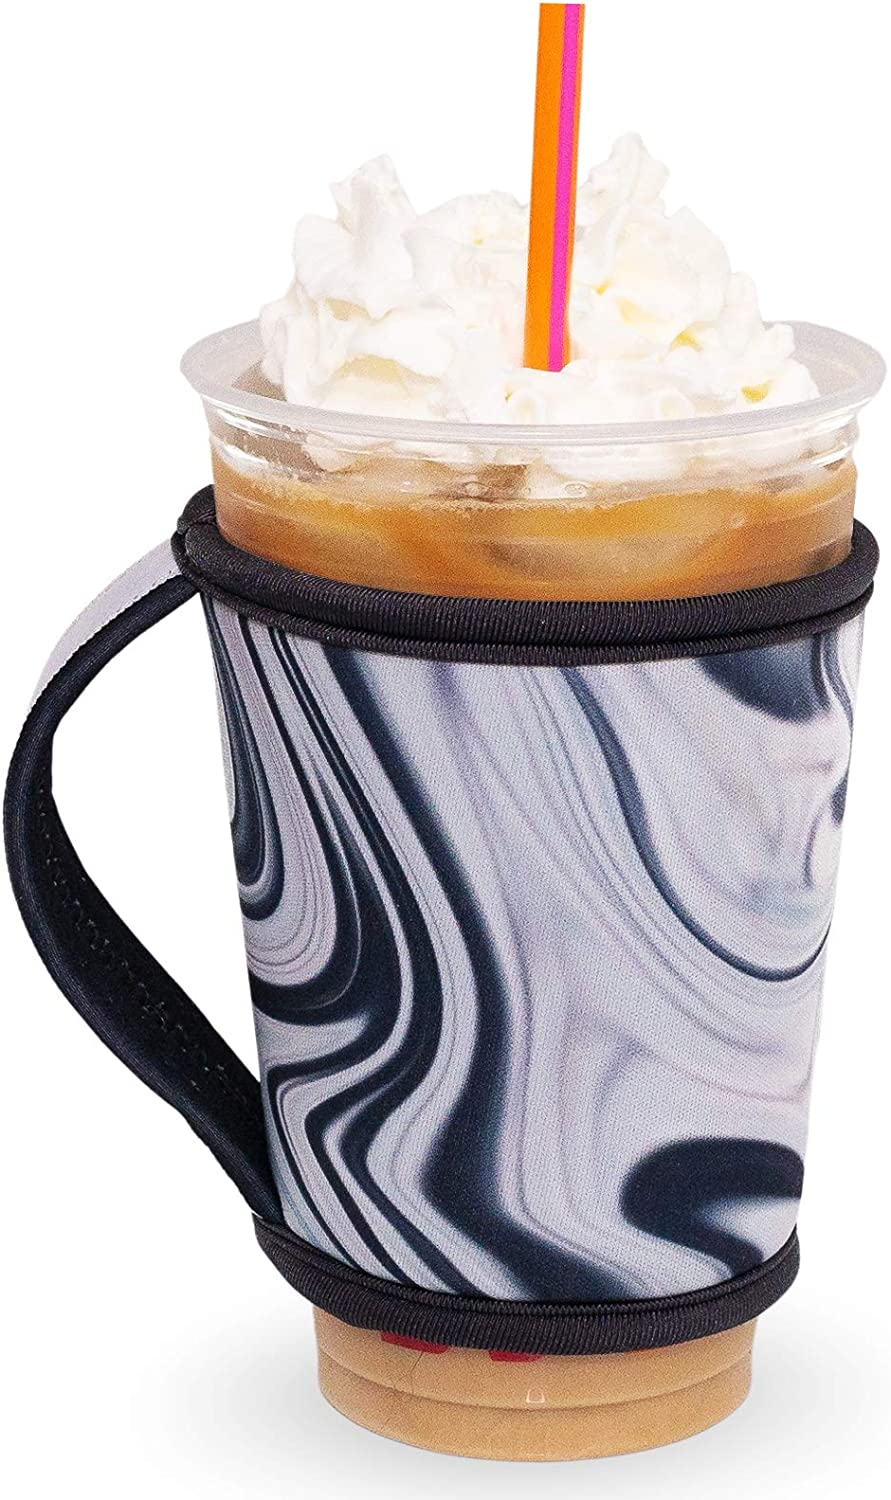 GoCuff Reusable Hot and Iced Coffee Cup Insulator Sleeve with Handle for Beverages and Neoprene Holder for Starbucks, McCafe, Dunkin Donuts, More (Medium, Large) (Black White Marble)